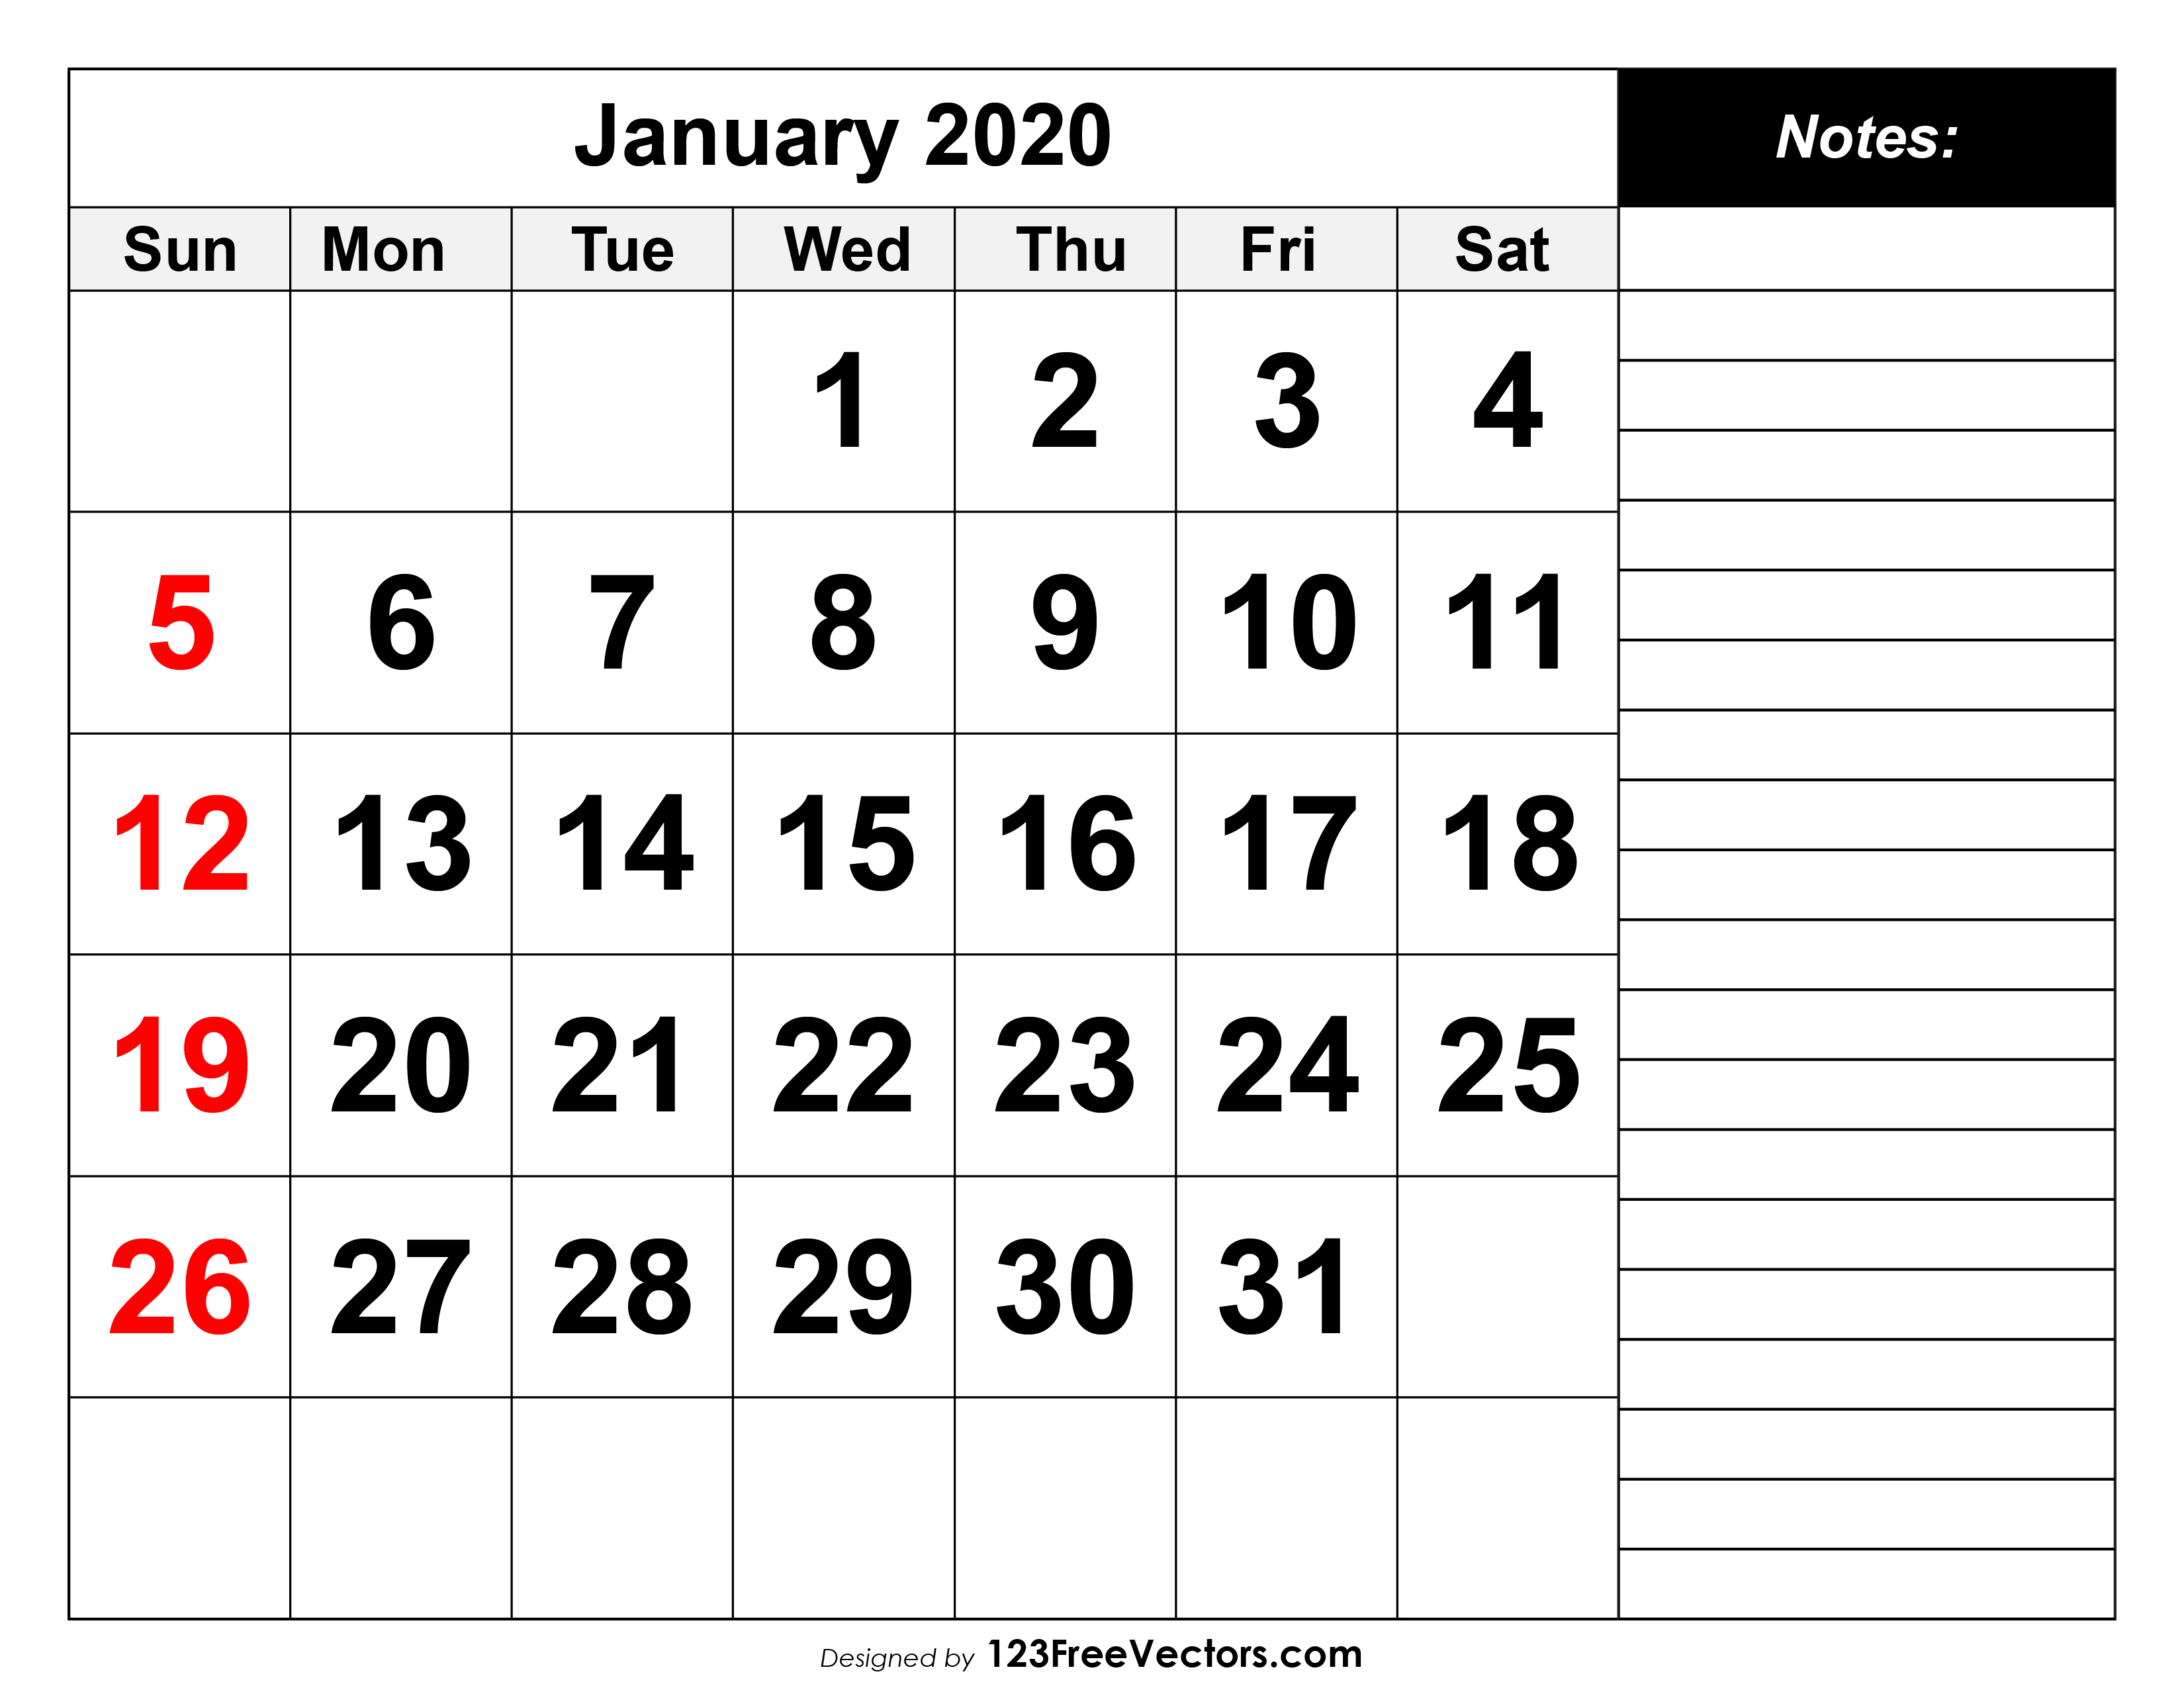 January 2020 Printable Calendar regarding 123 Calendars January 2020